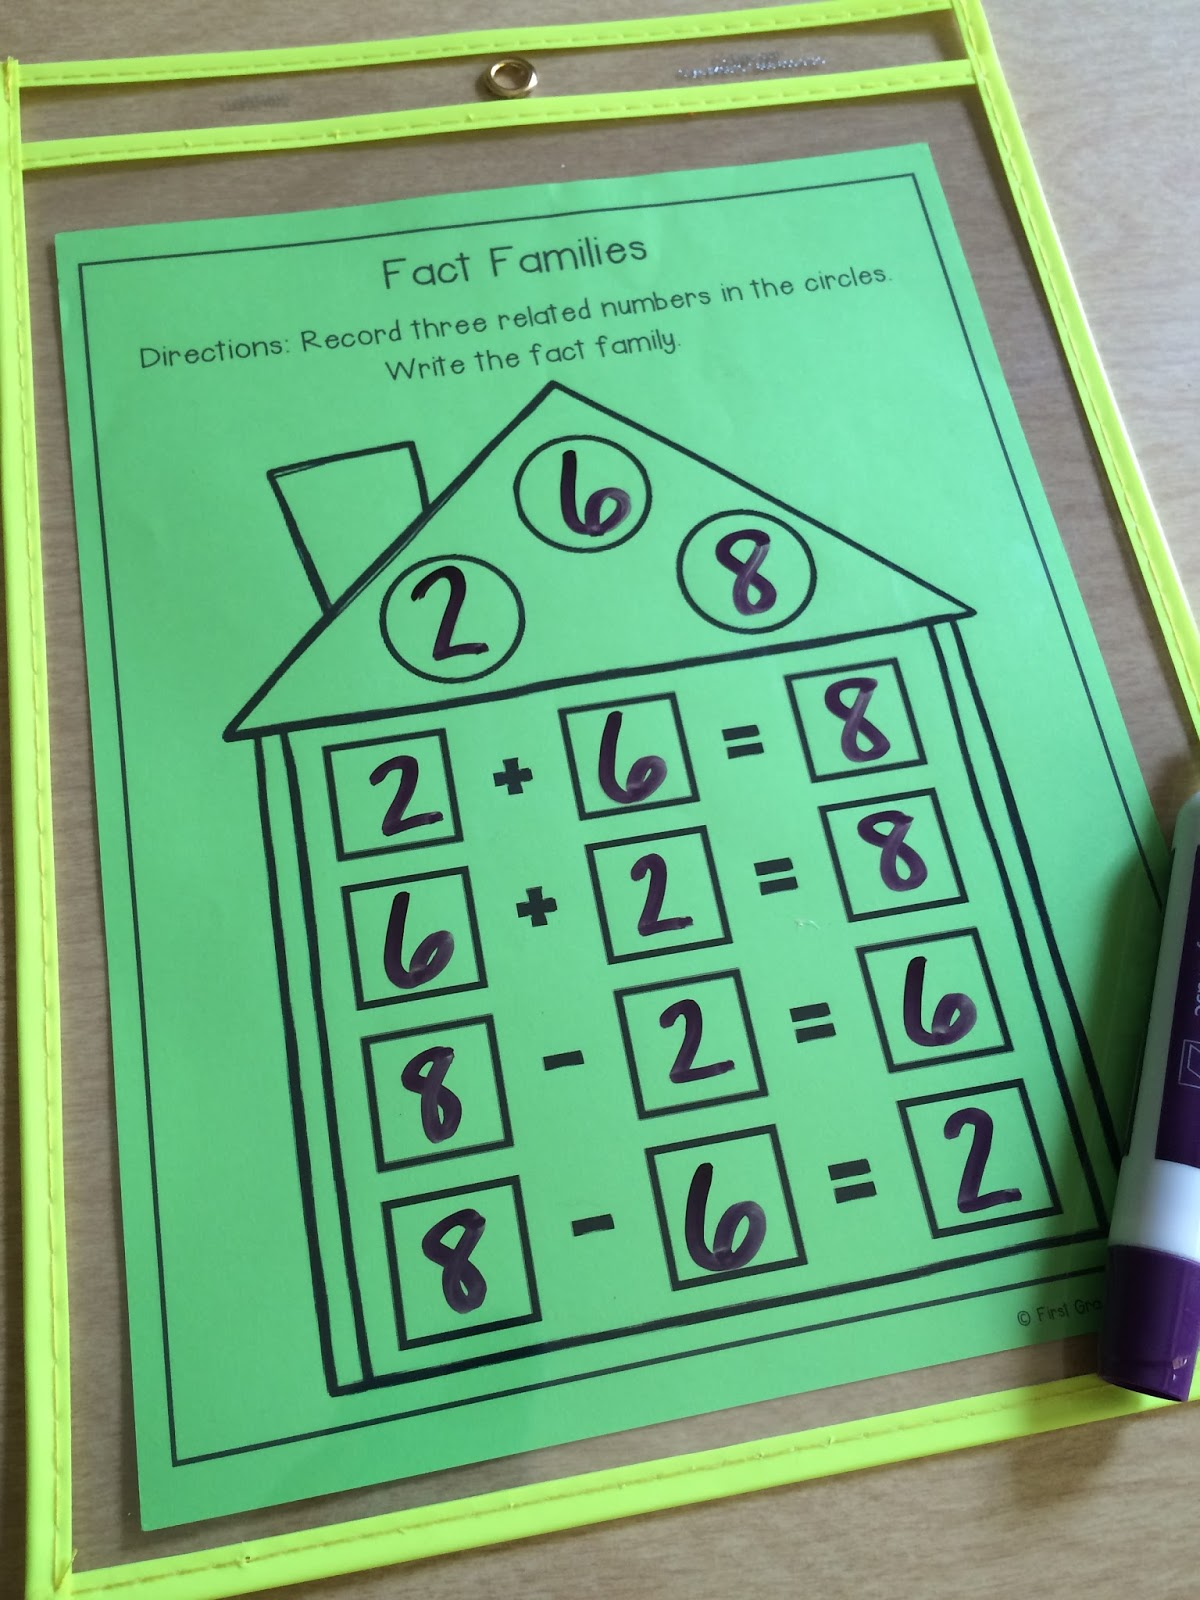 worksheet Fact Family Flash Cards math mats for first grade centers and more img 0103 jpg